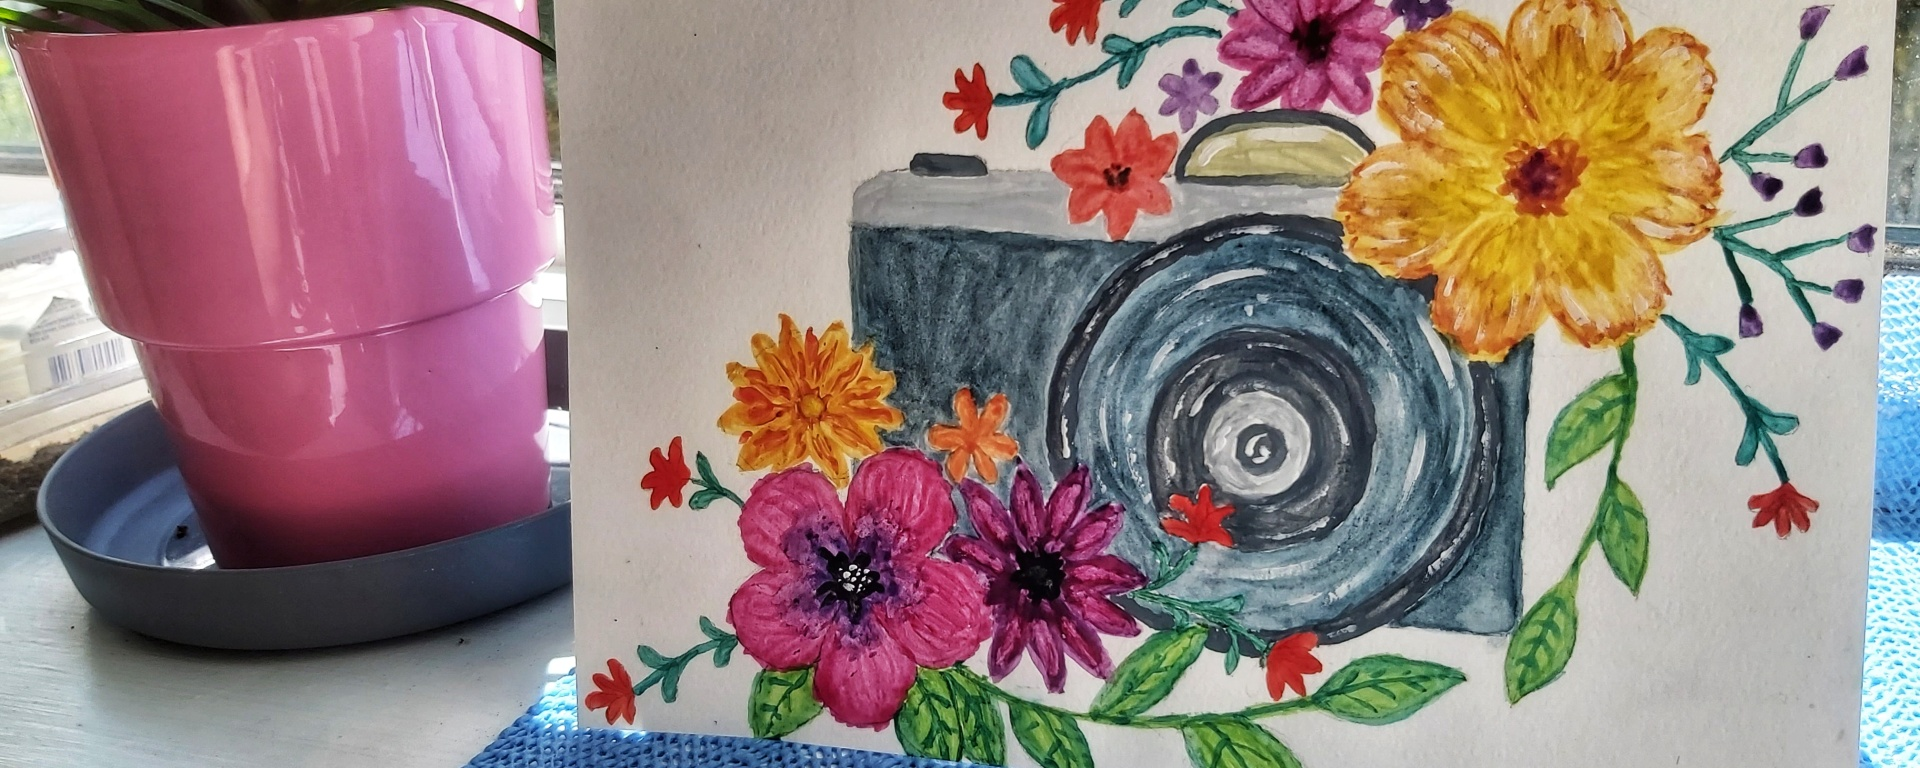 Finished watercolour card - camera with flowers